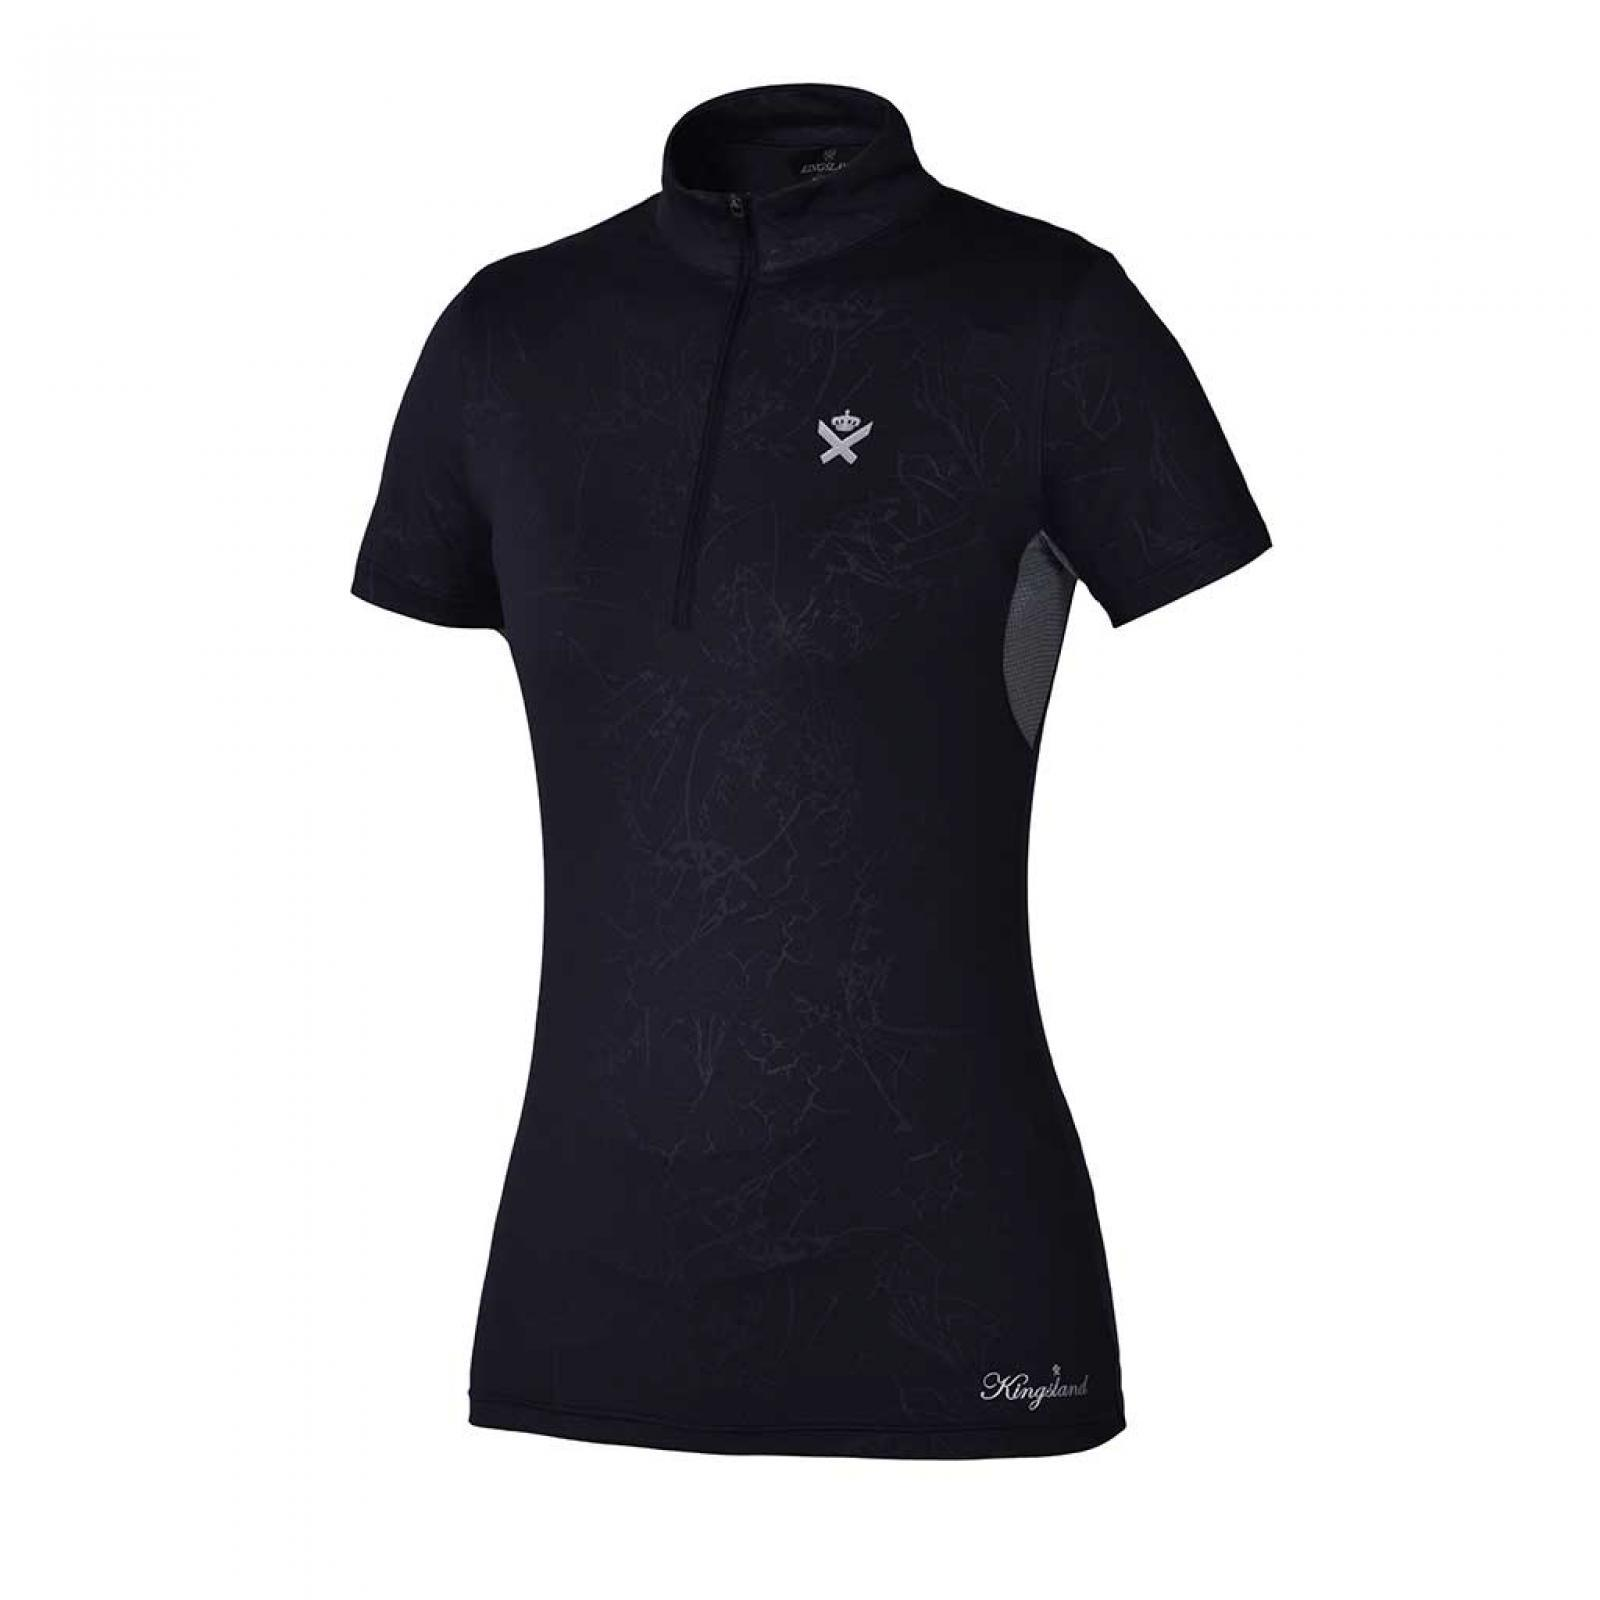 Kingsland Aconcagua Training Top